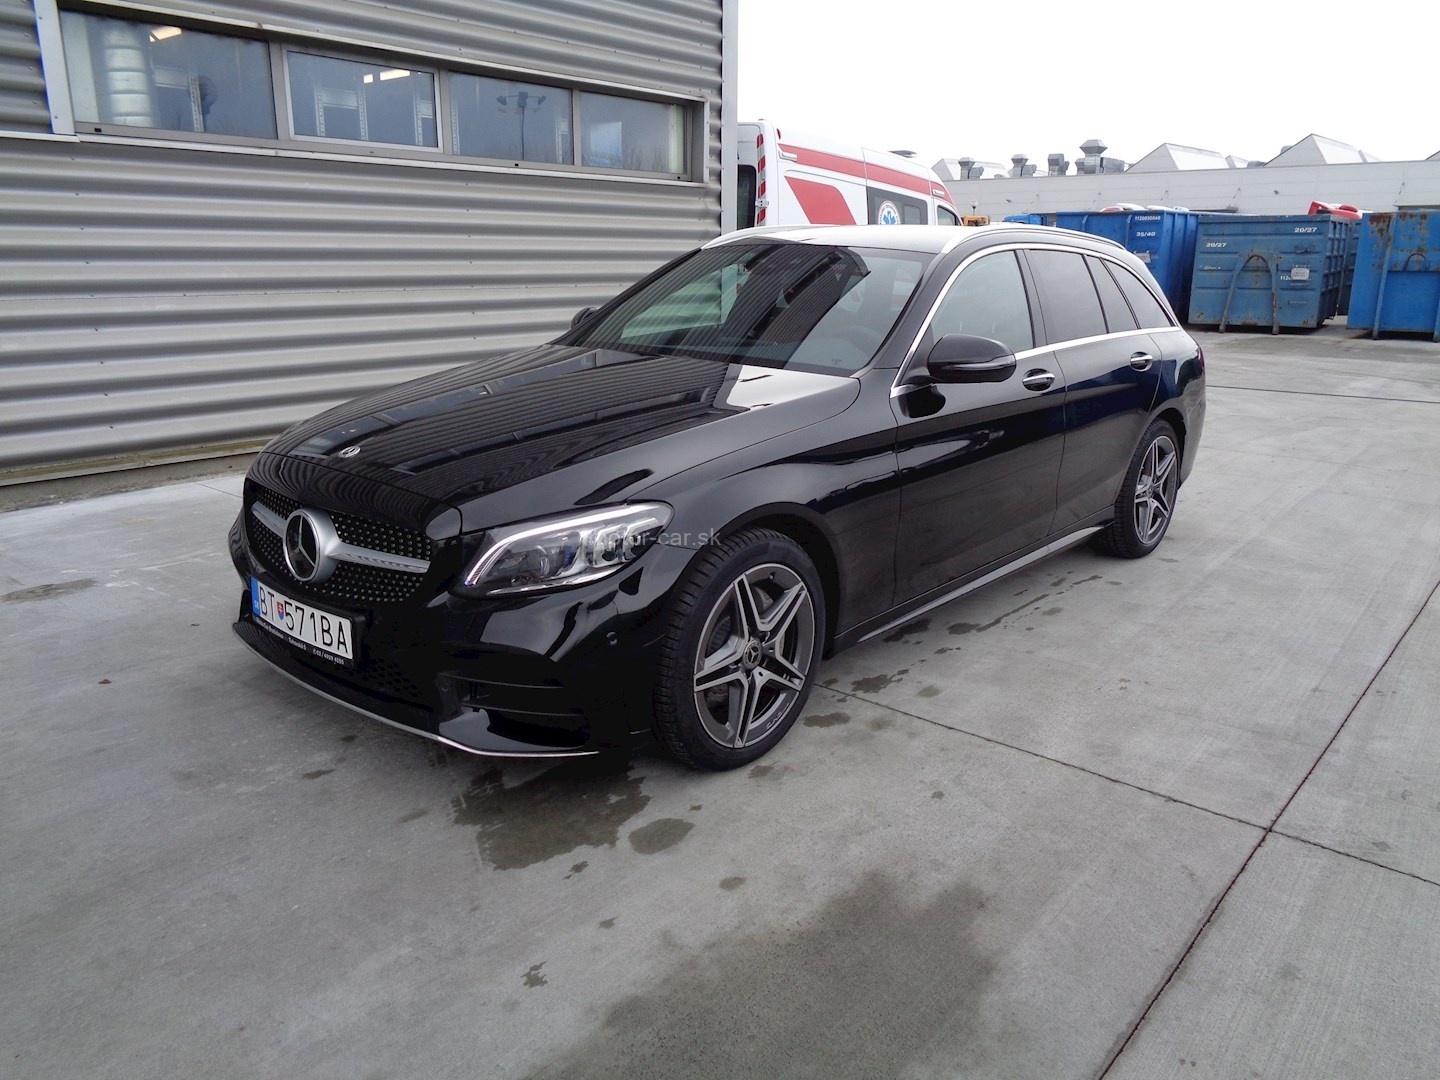 mercedes-benz c 220 d 4matic kombi